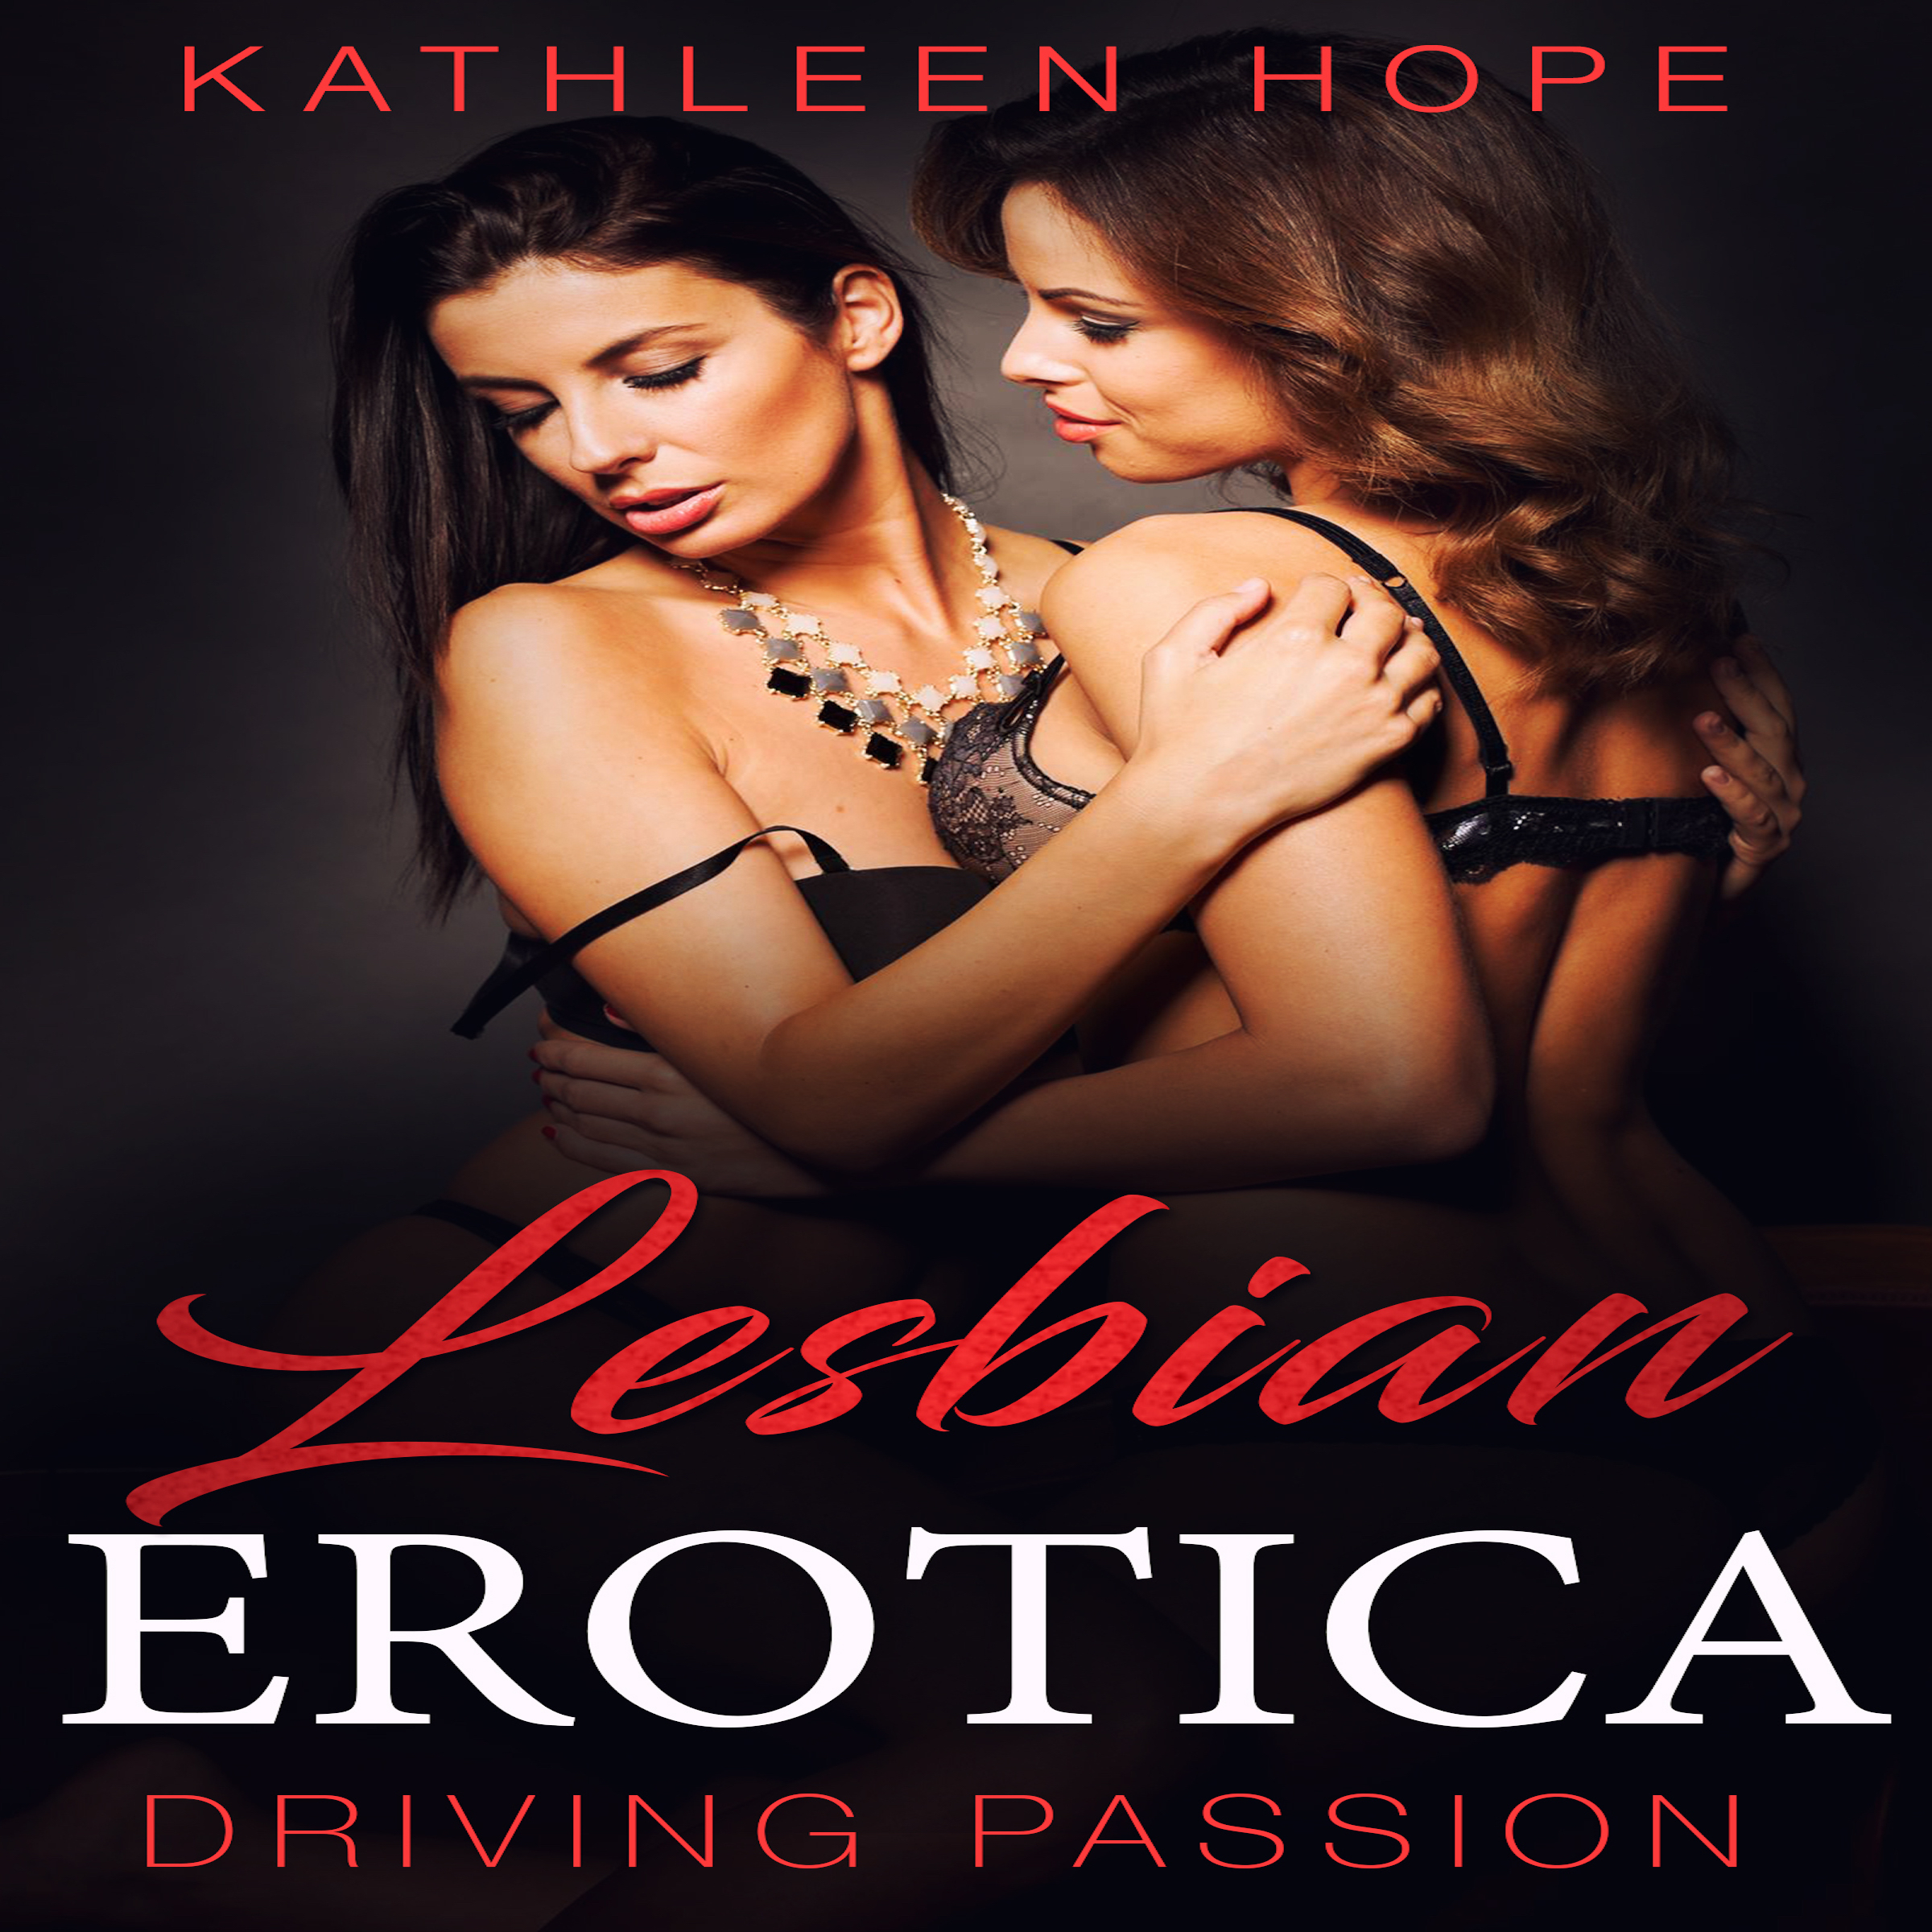 Lesbian Erotica: Driving Passion Audiobook, by Kathleen Hope